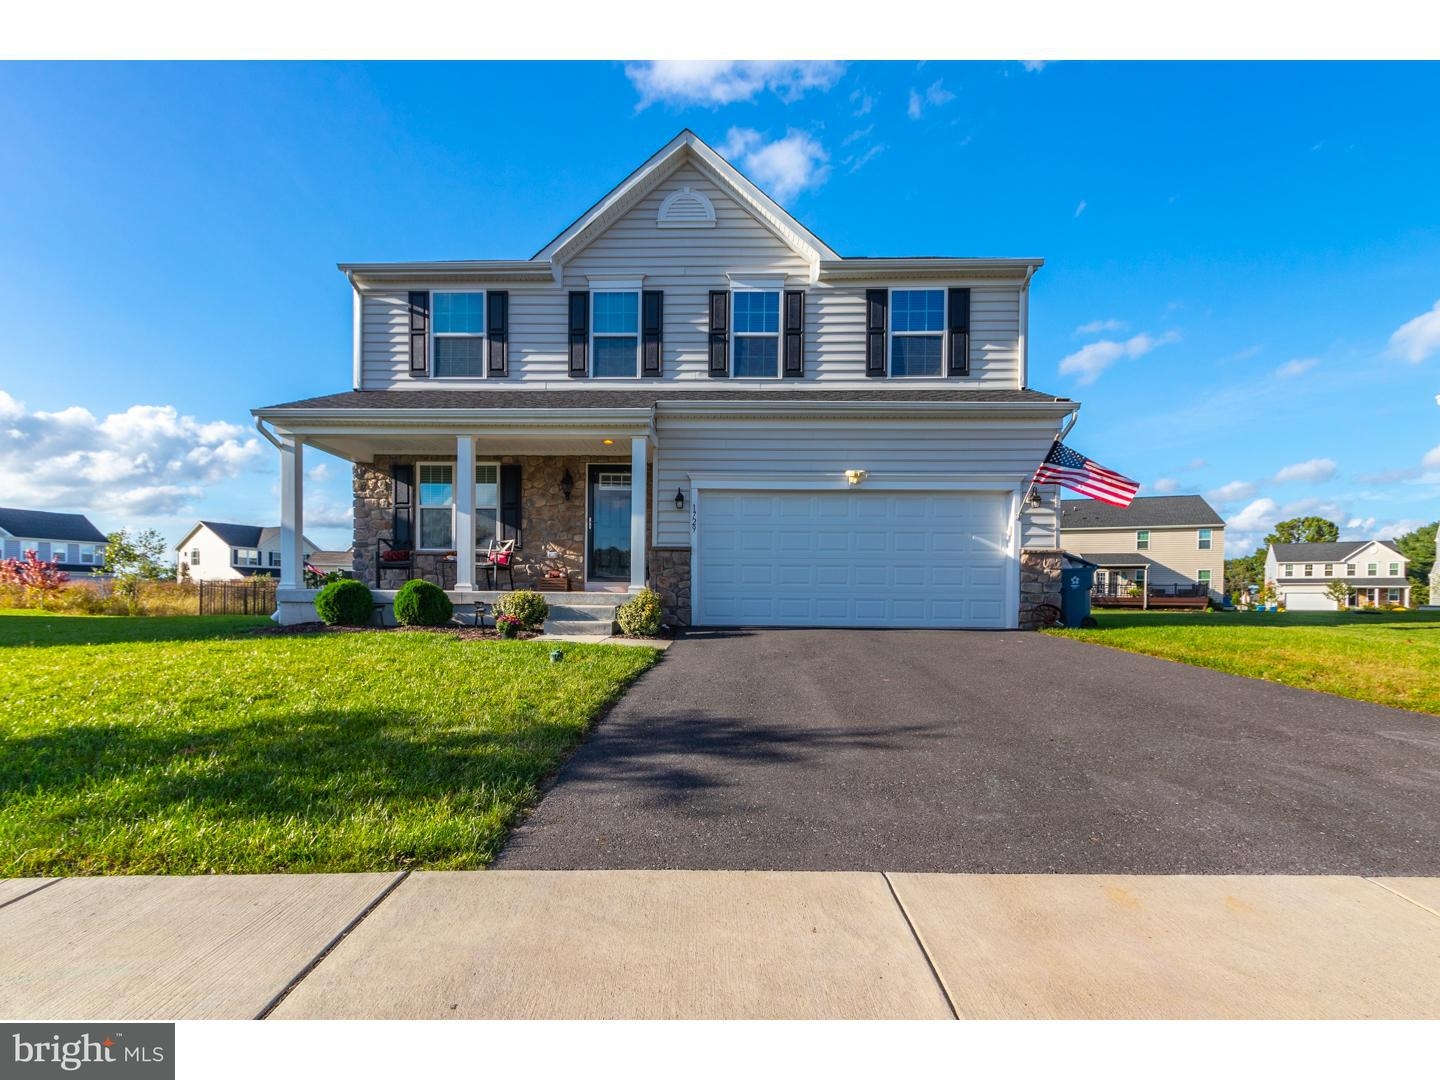 1729 KITANING LN, QUAKERTOWN - Listed at $399,900, QUAKERTOWN